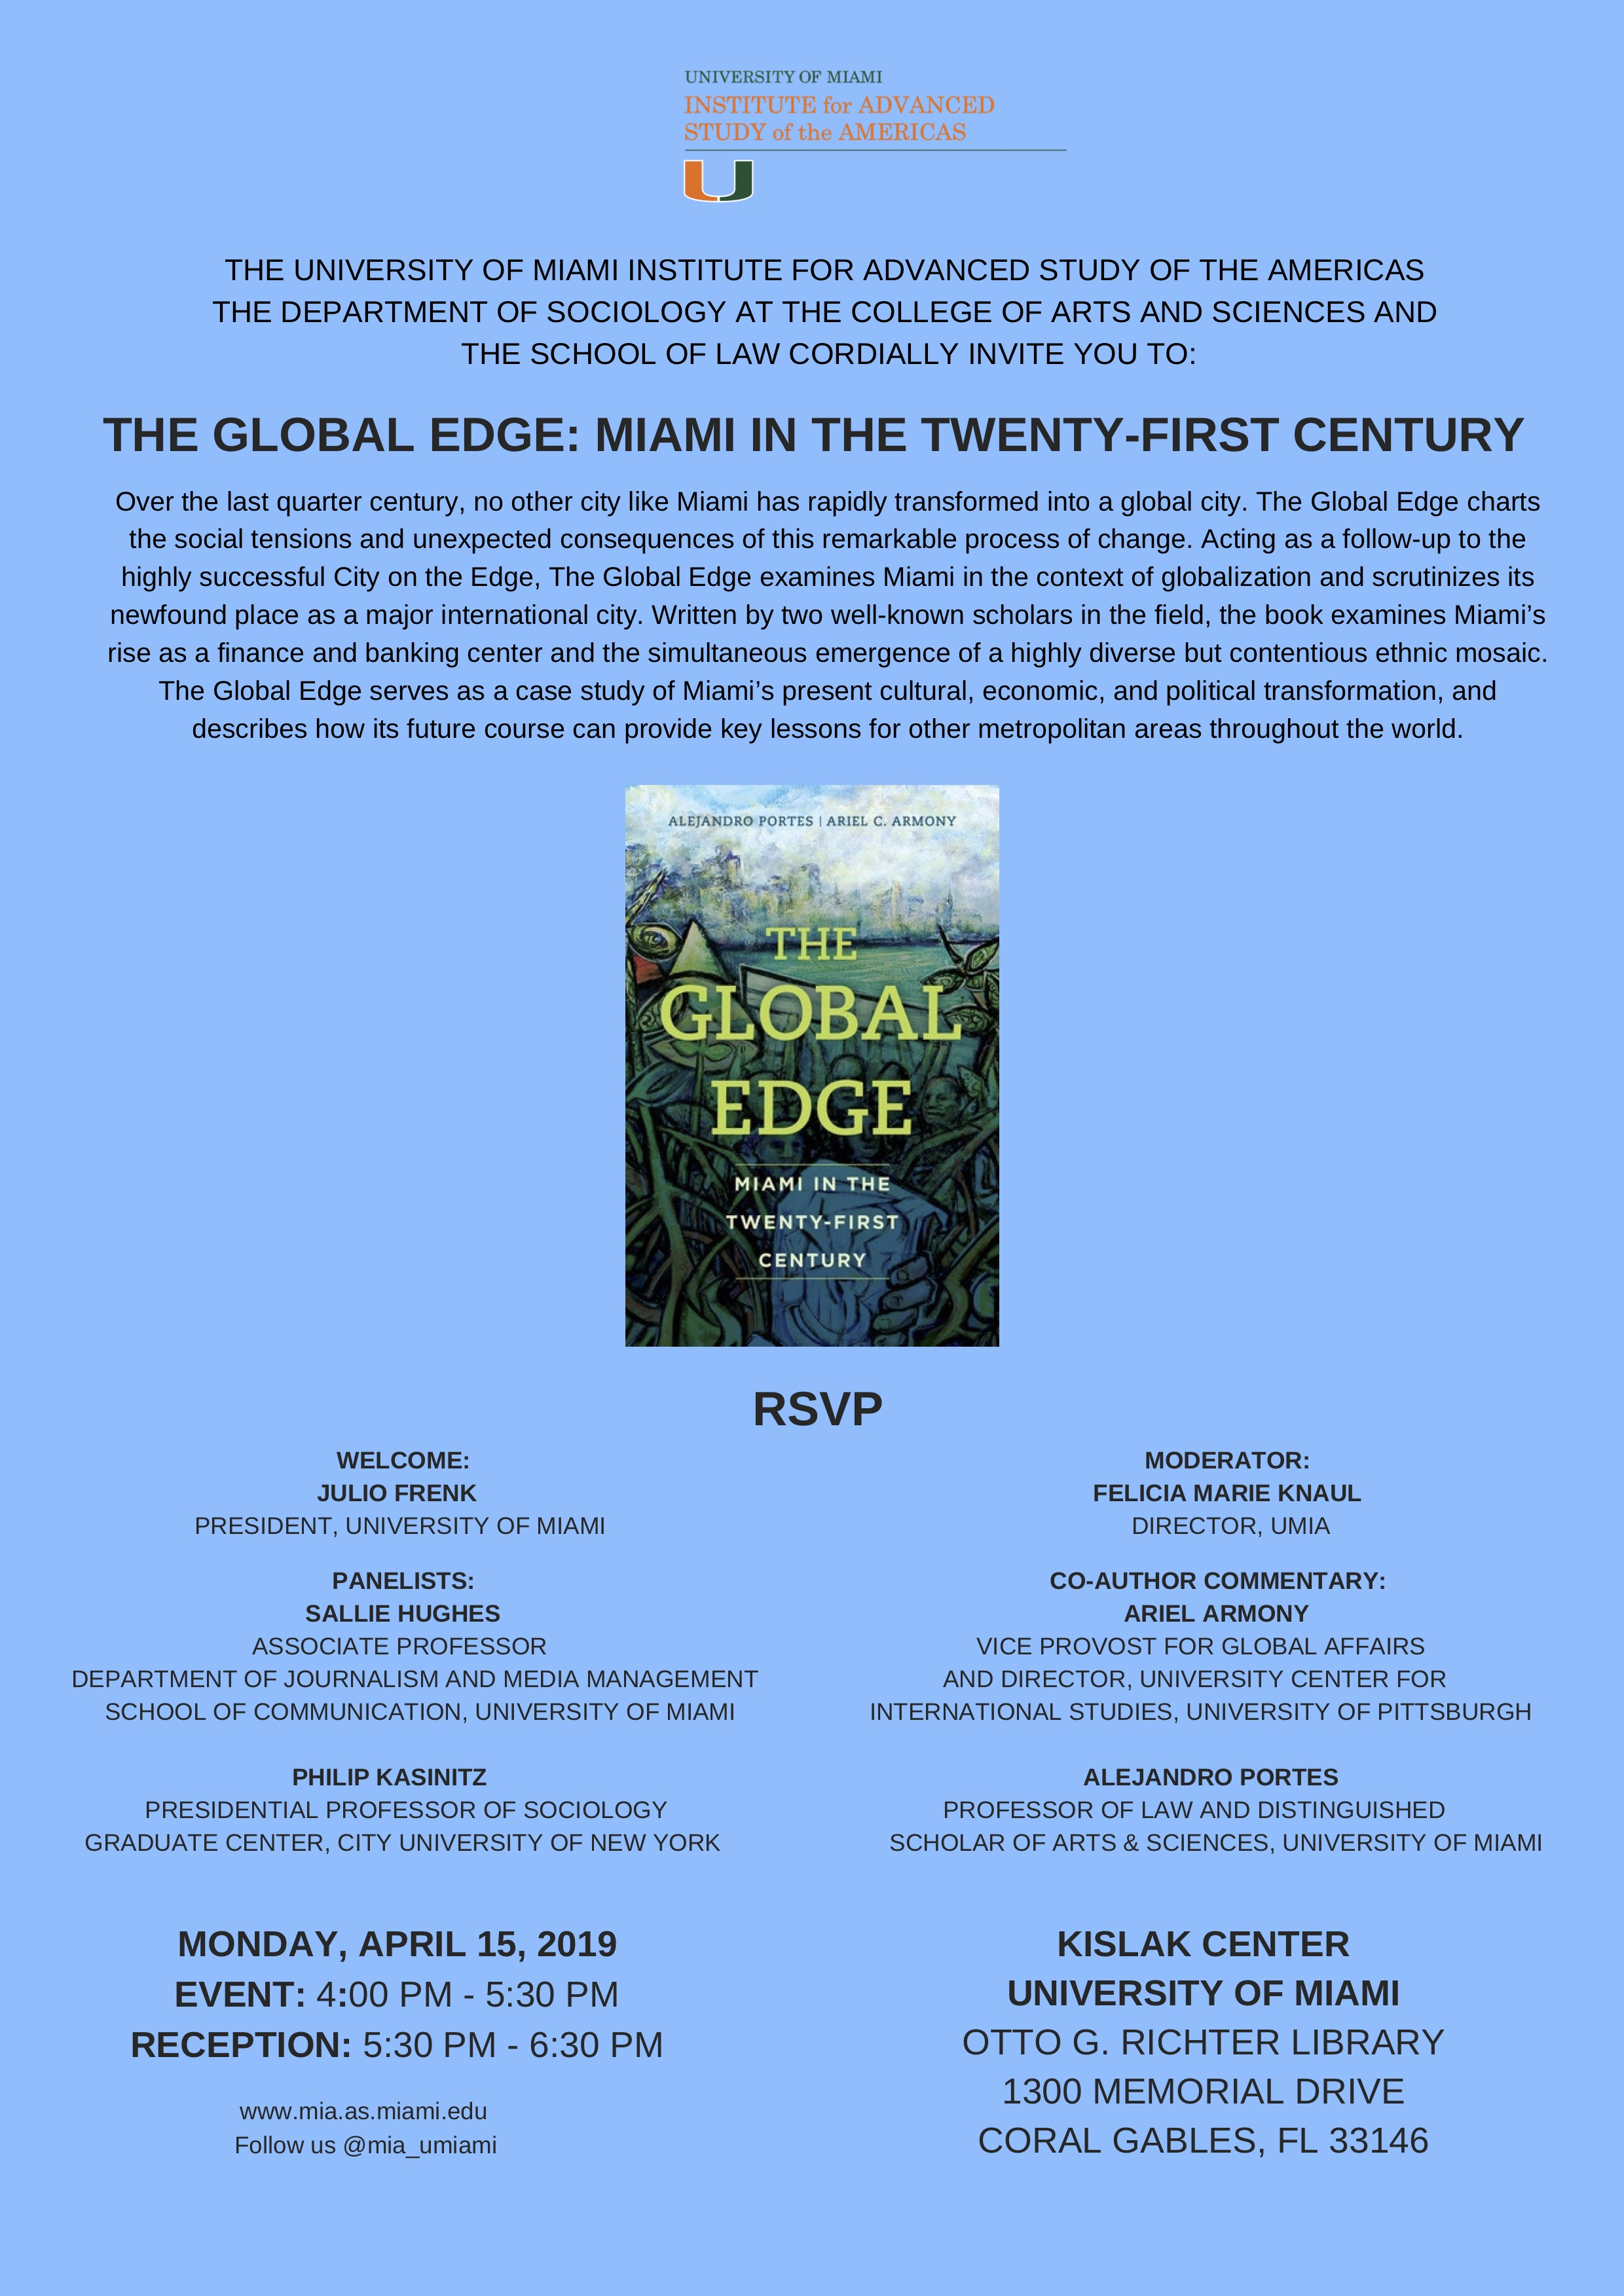 The Global Edge: Miami in the Twenty-First Century